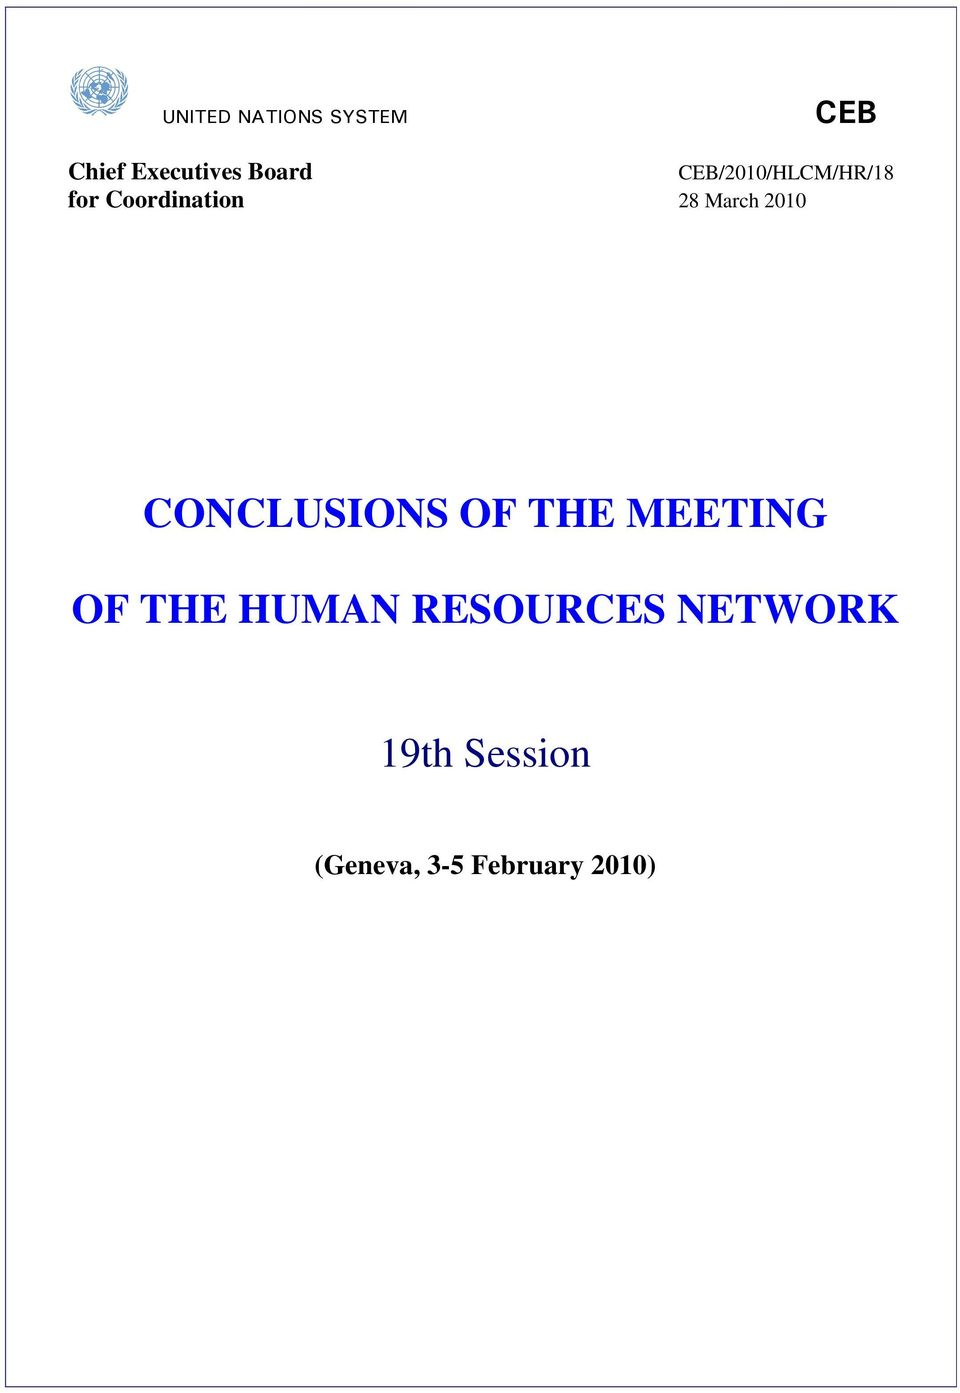 2010 CONCLUSIONS OF THE MEETING OF THE HUMAN